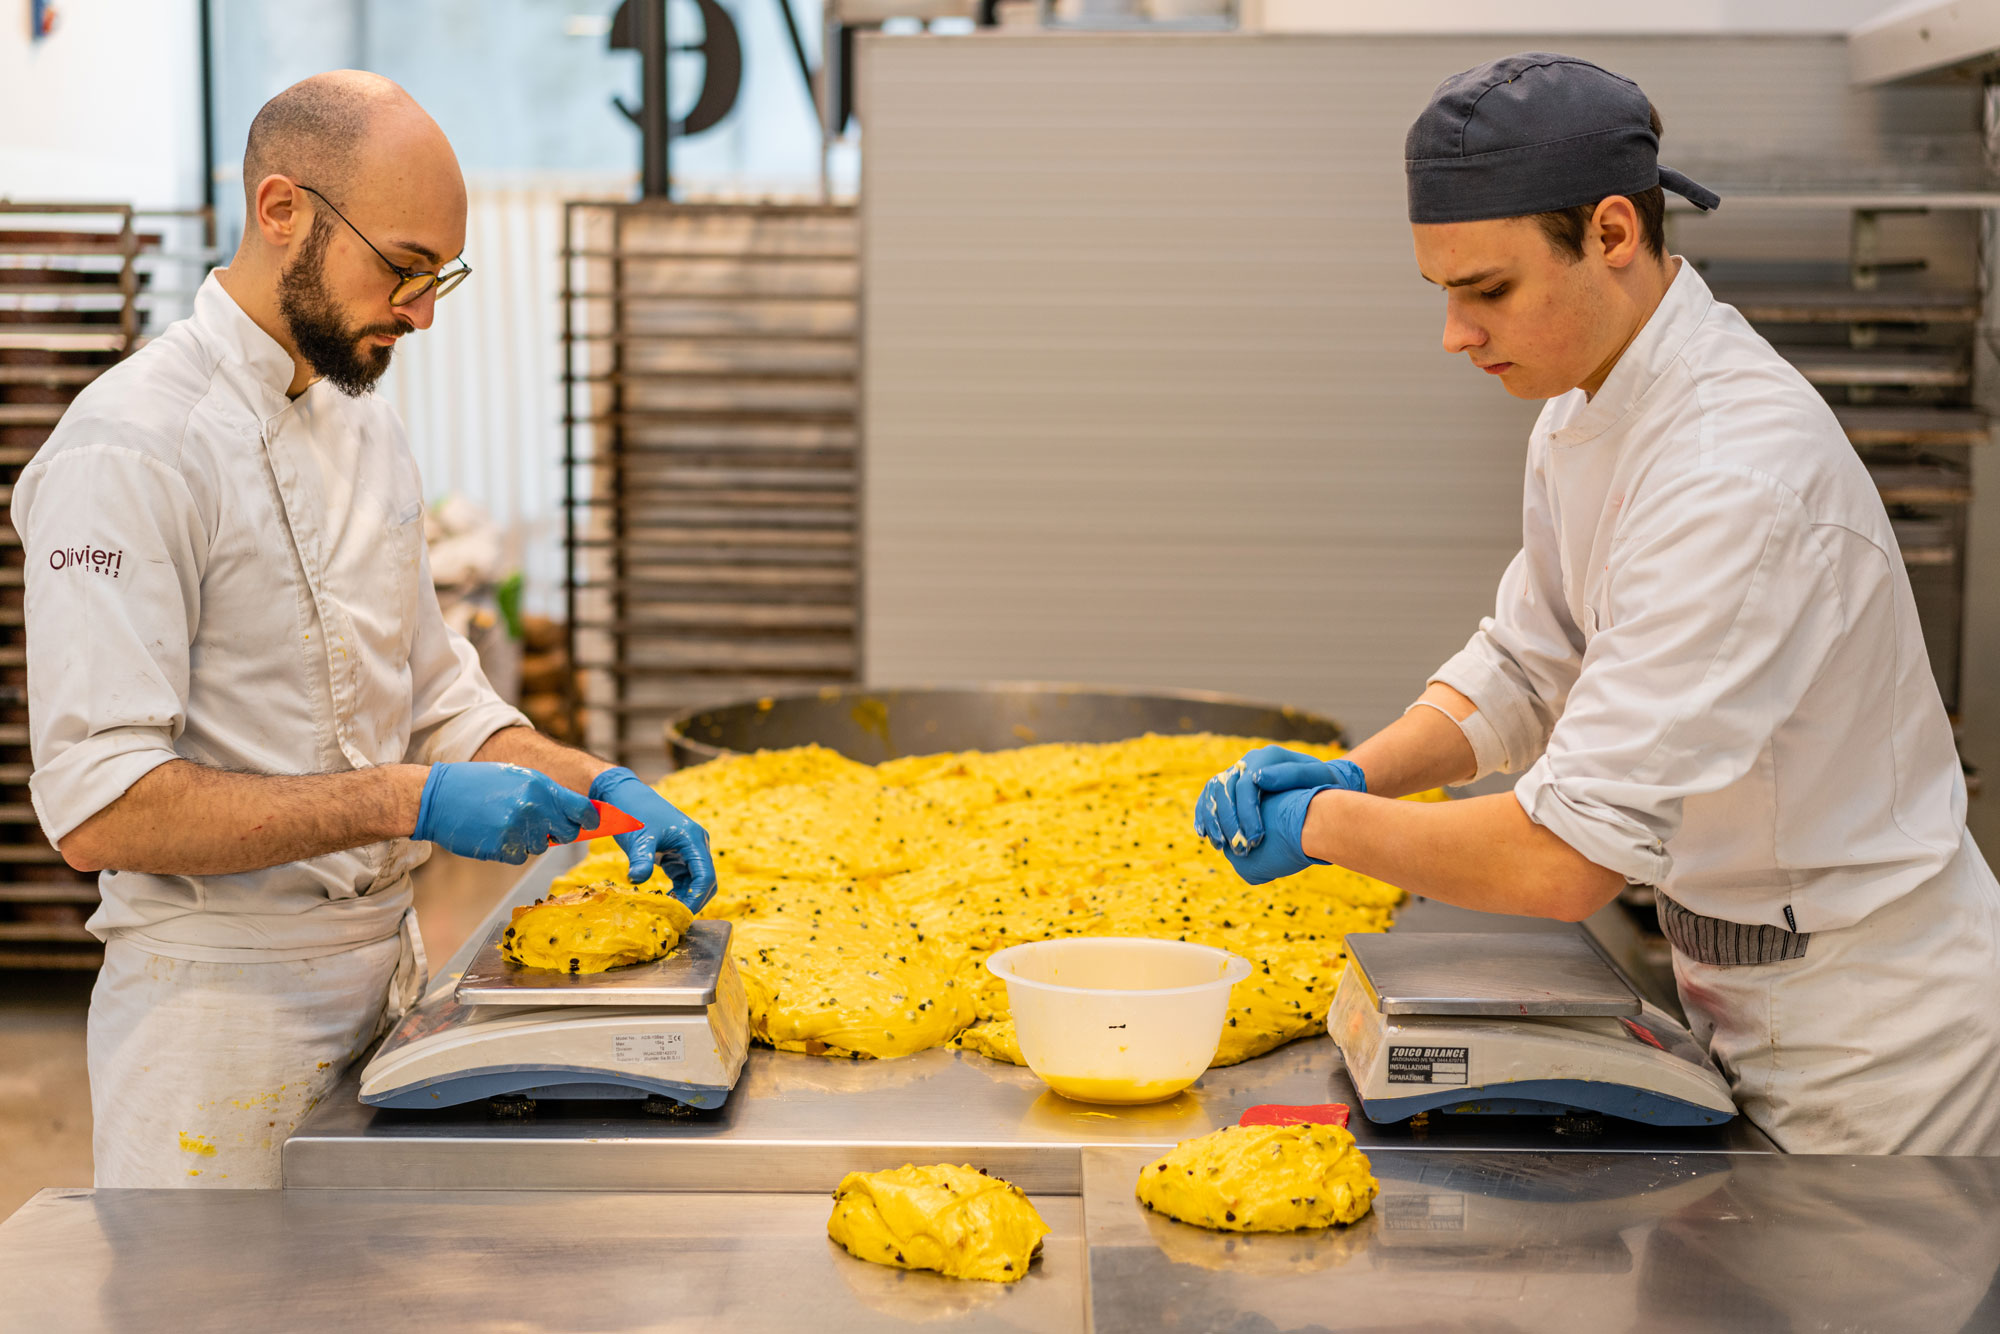 Bakers carefully portioning panettone dough.